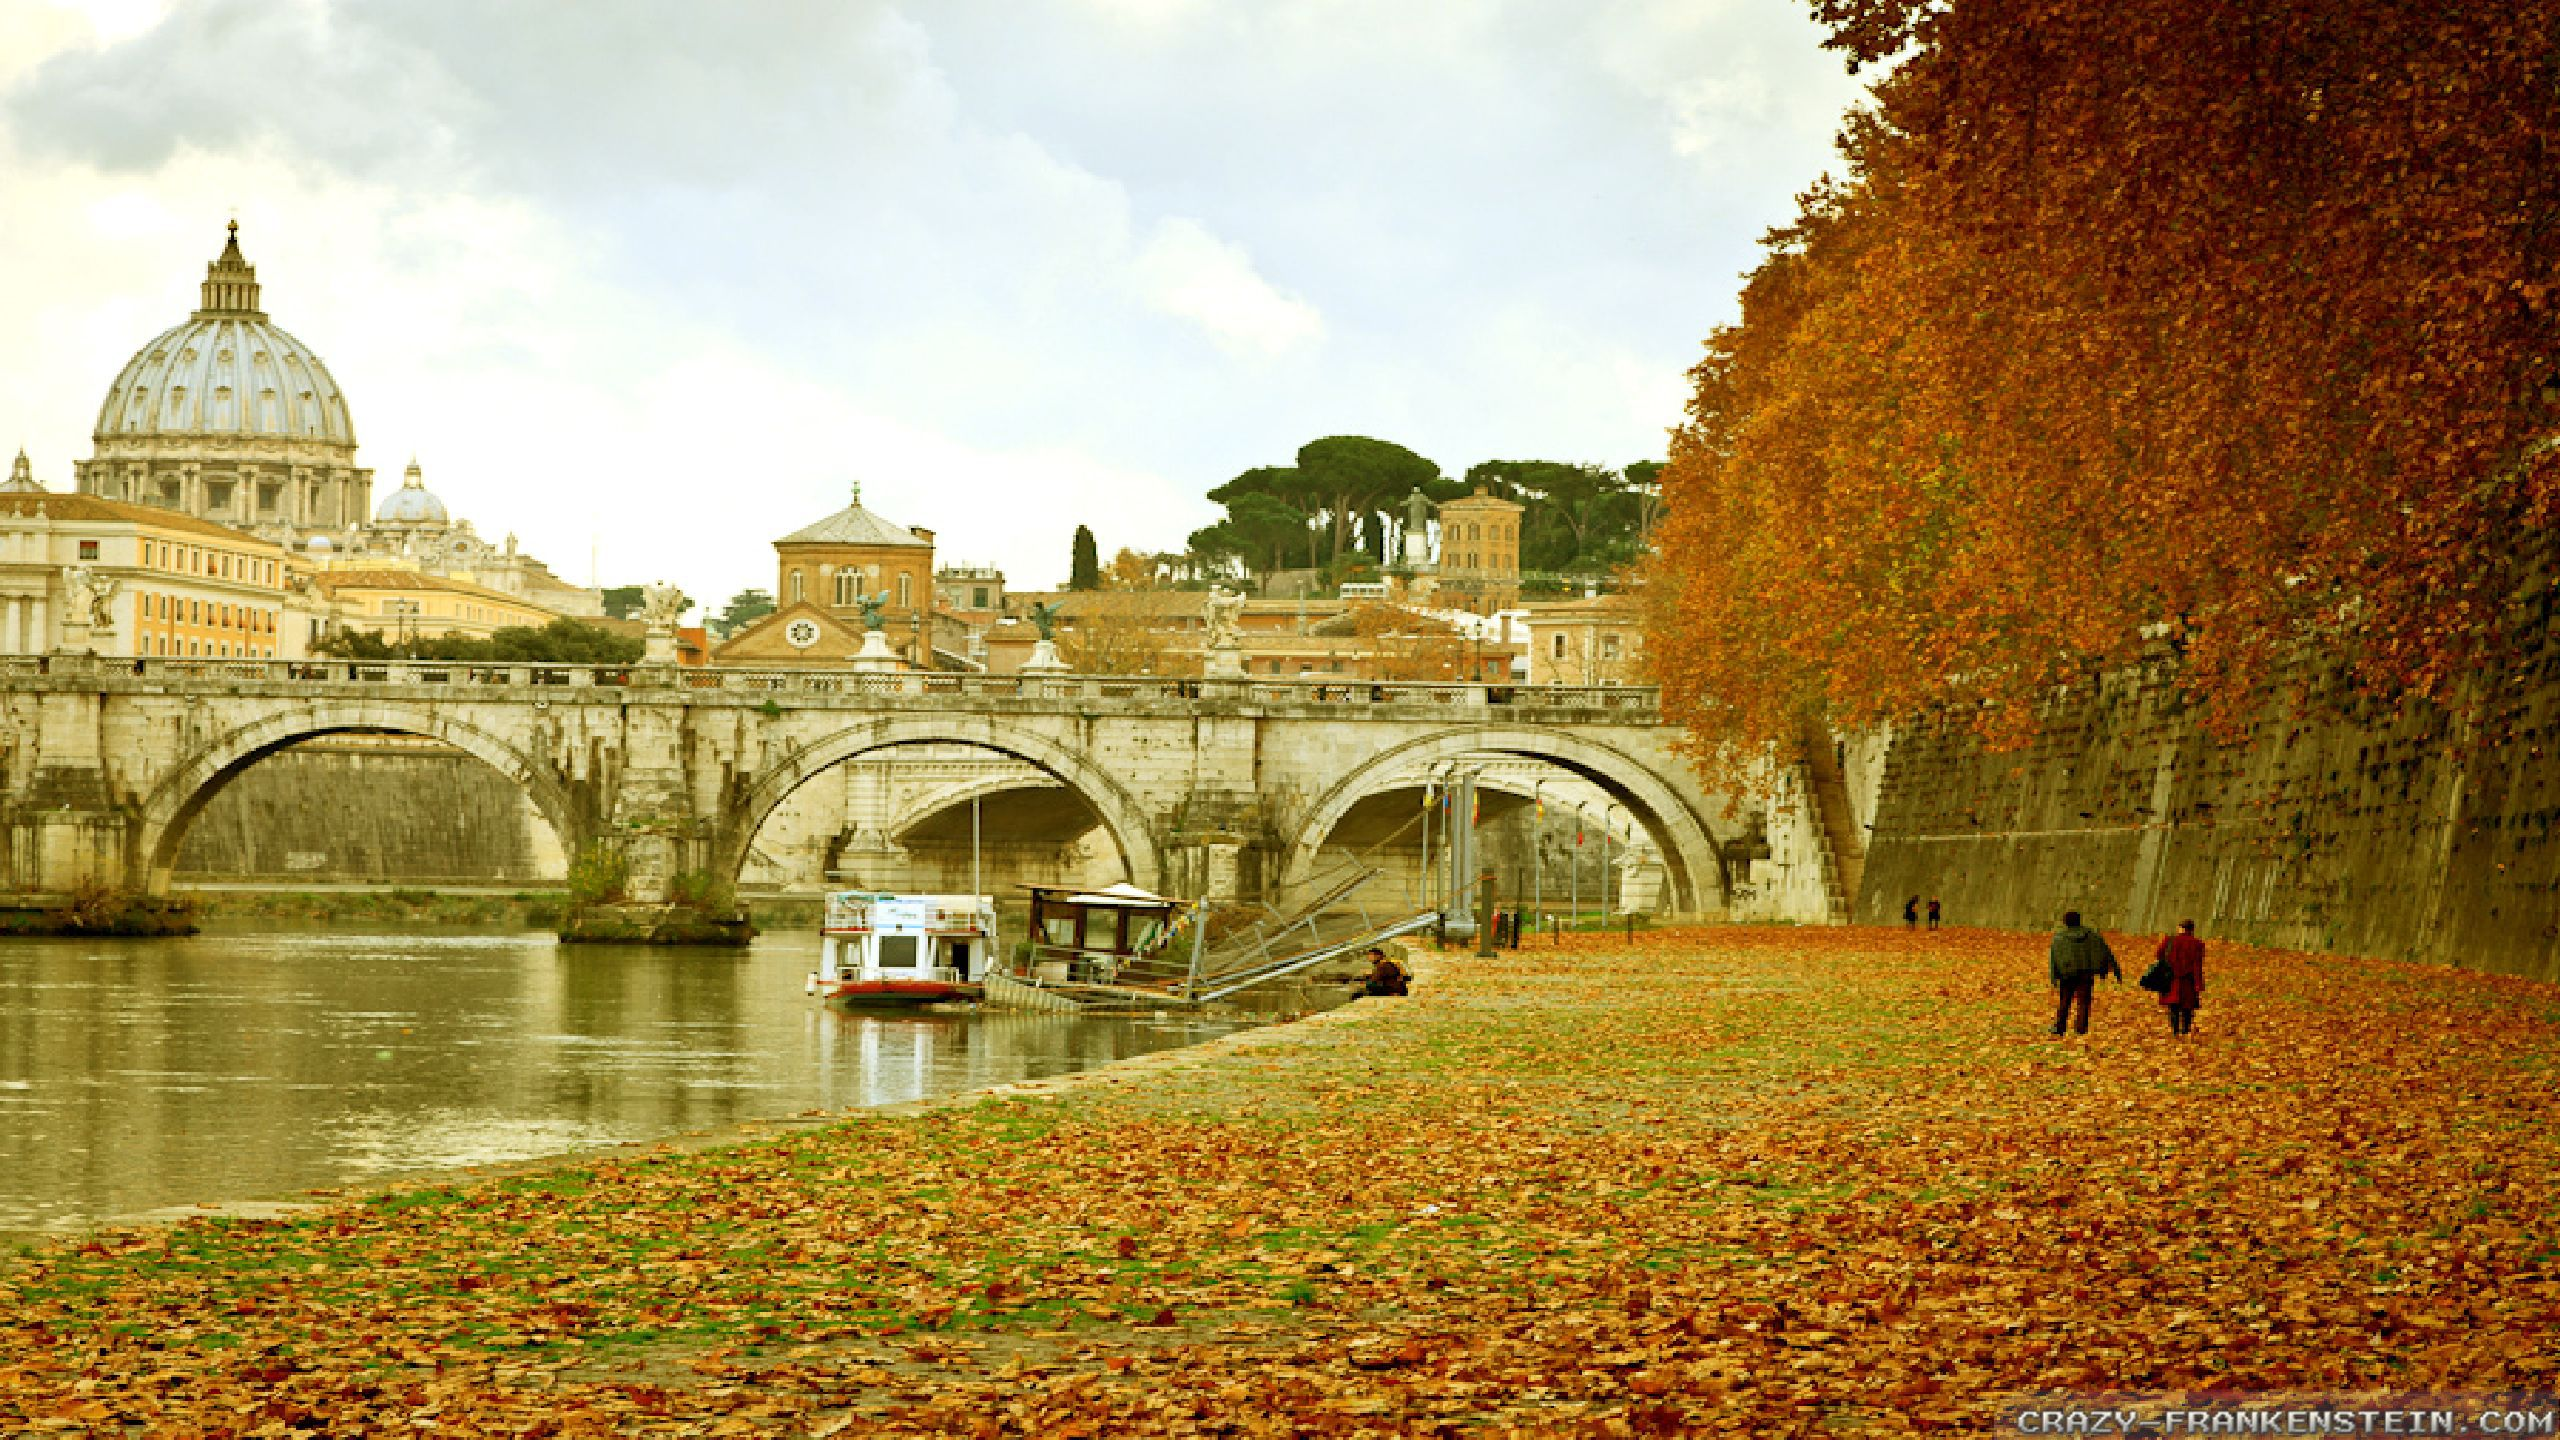 Free Widescreen Wallpaper Fall Autumn In Italy Wallpapers Seasonal Crazy Frankenstein